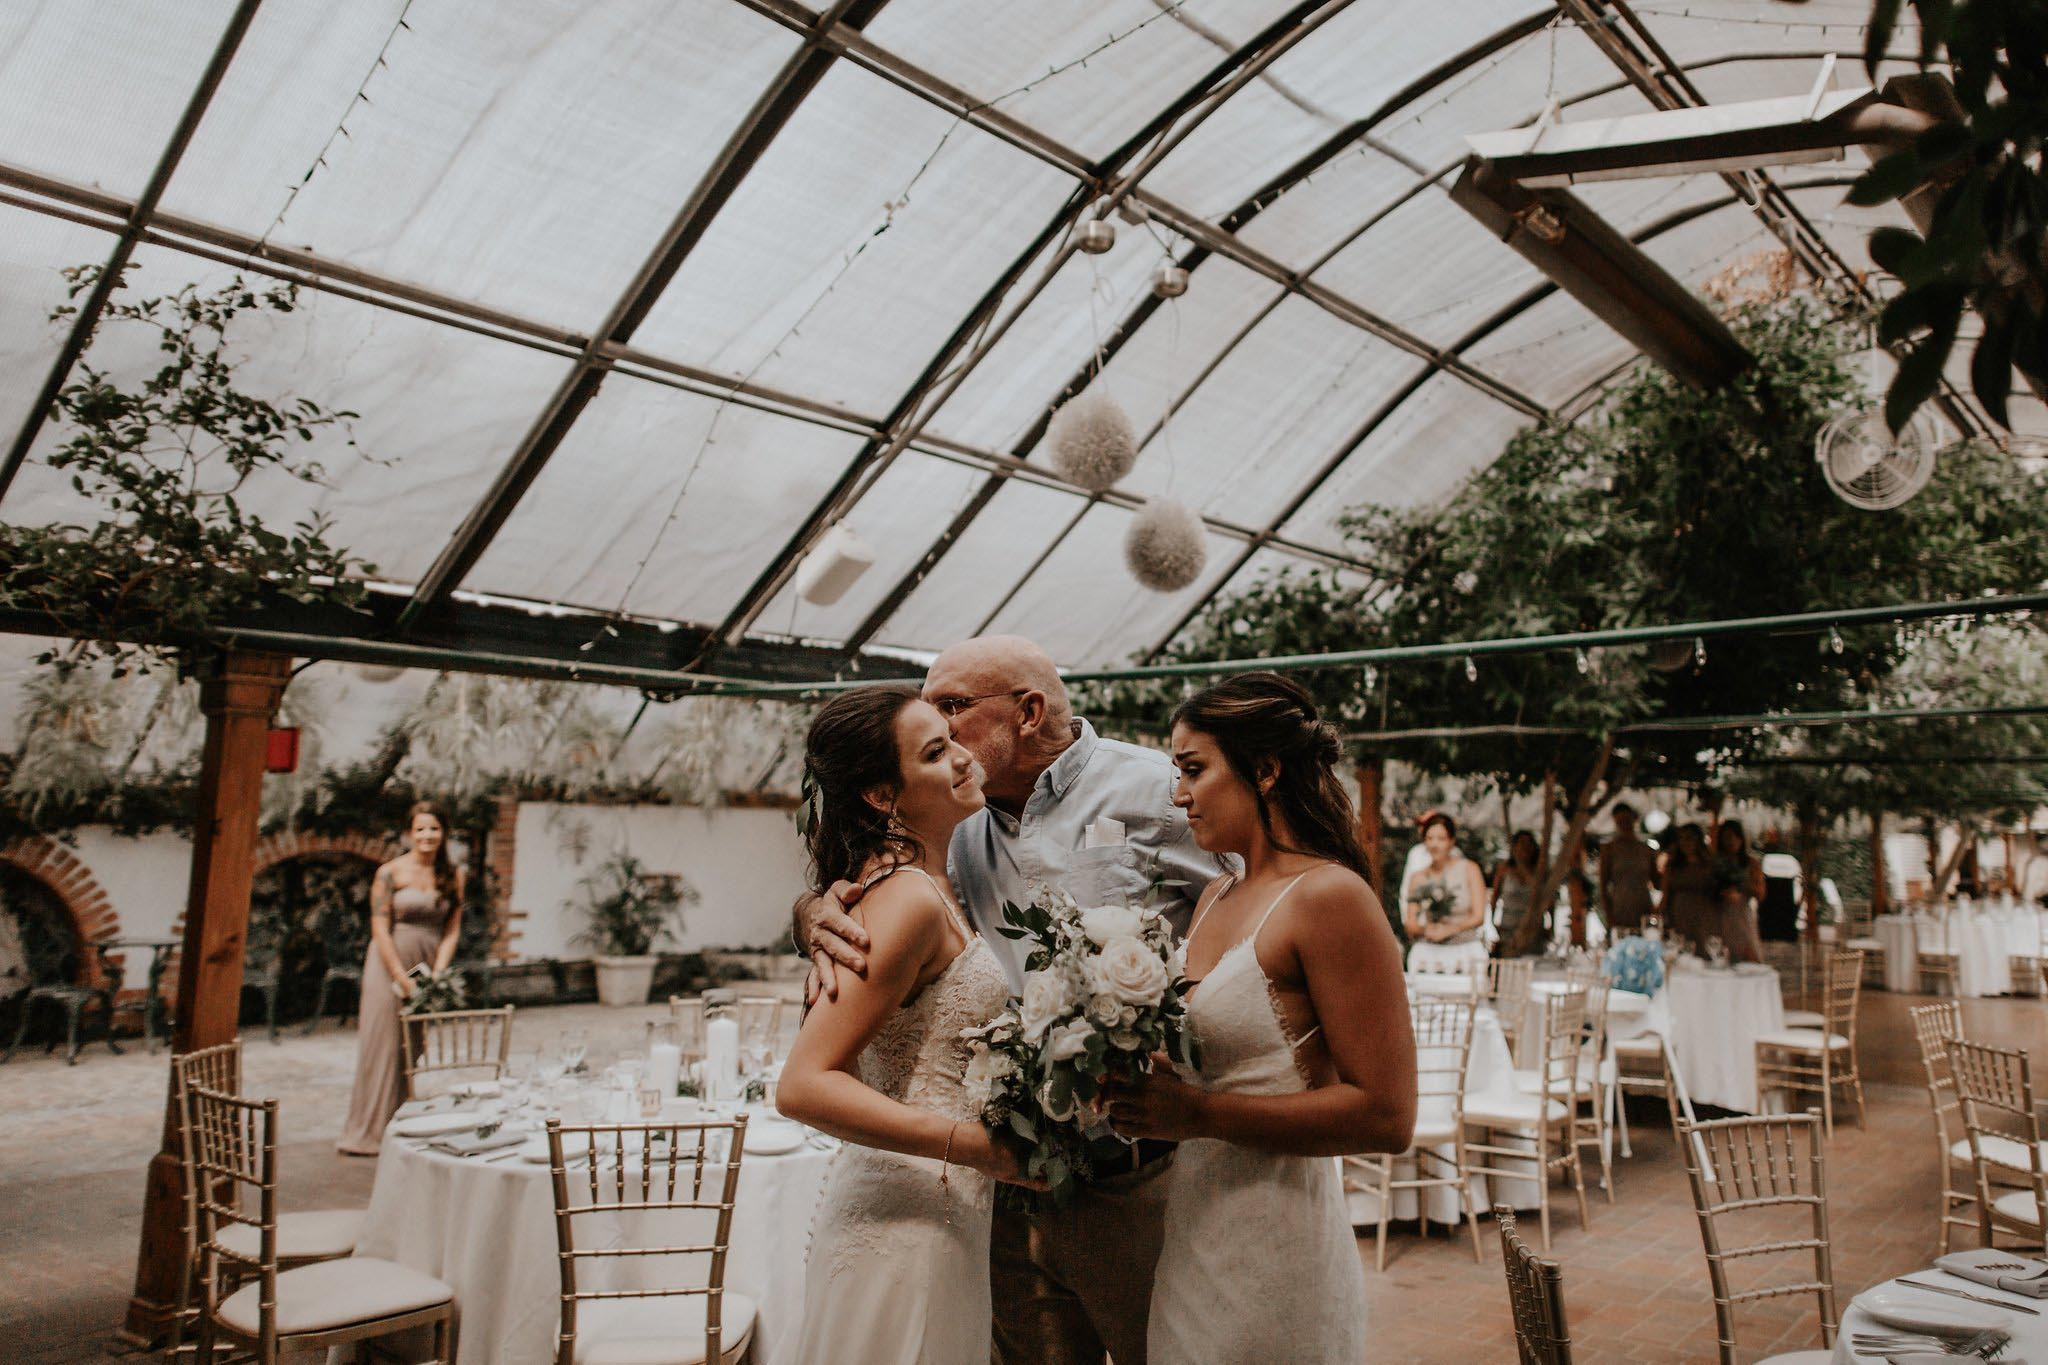 Bows & Lavender two brides mrs & mrs lesbian greenhouse wedding America Dancing With Her magazine